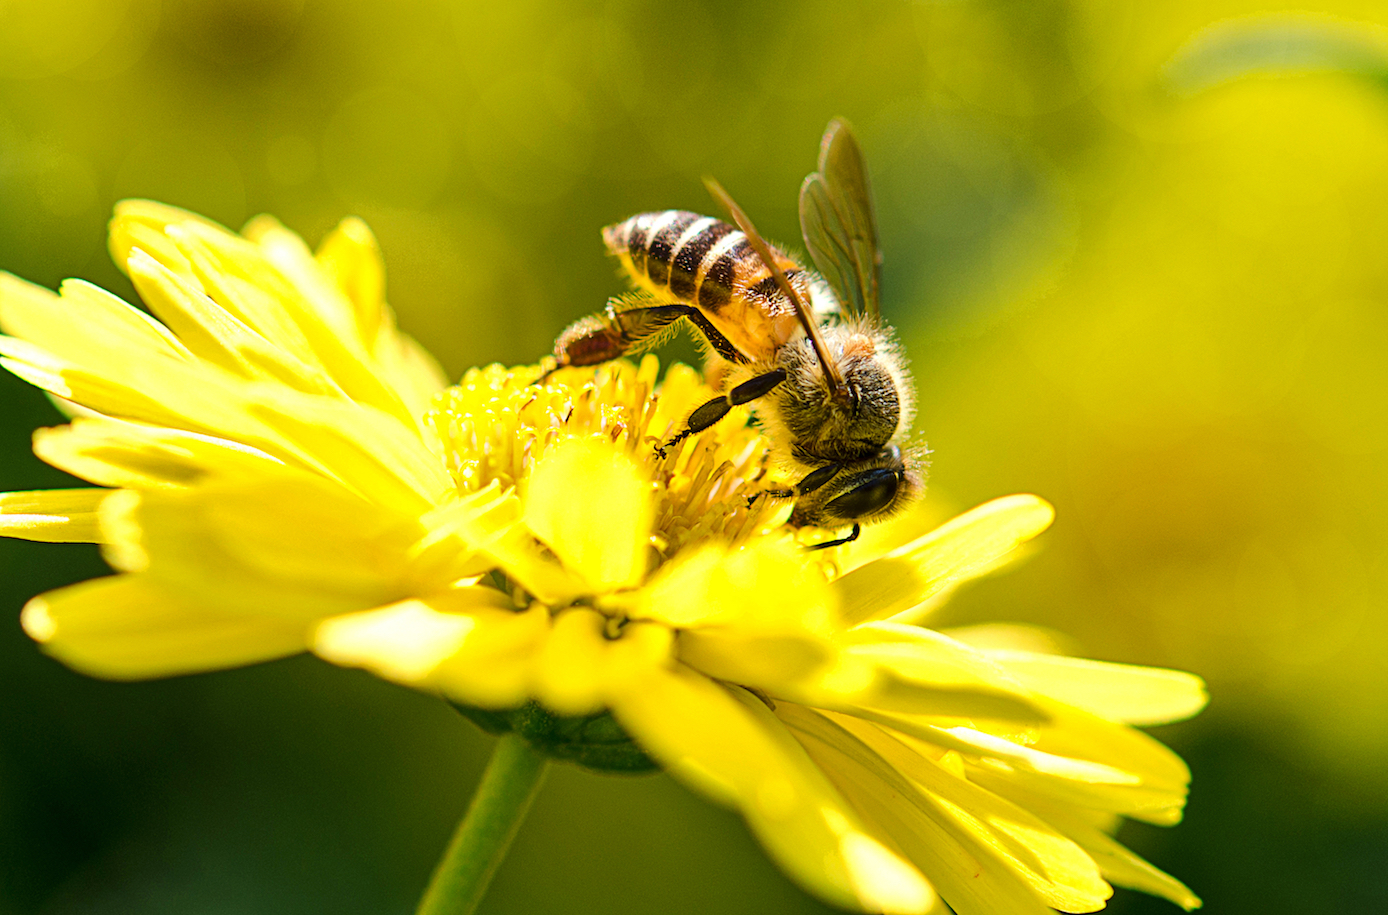 According to new a new study by scientists at Texas A&M University, an almond-crop fungicide could be causing the death of honey bees.